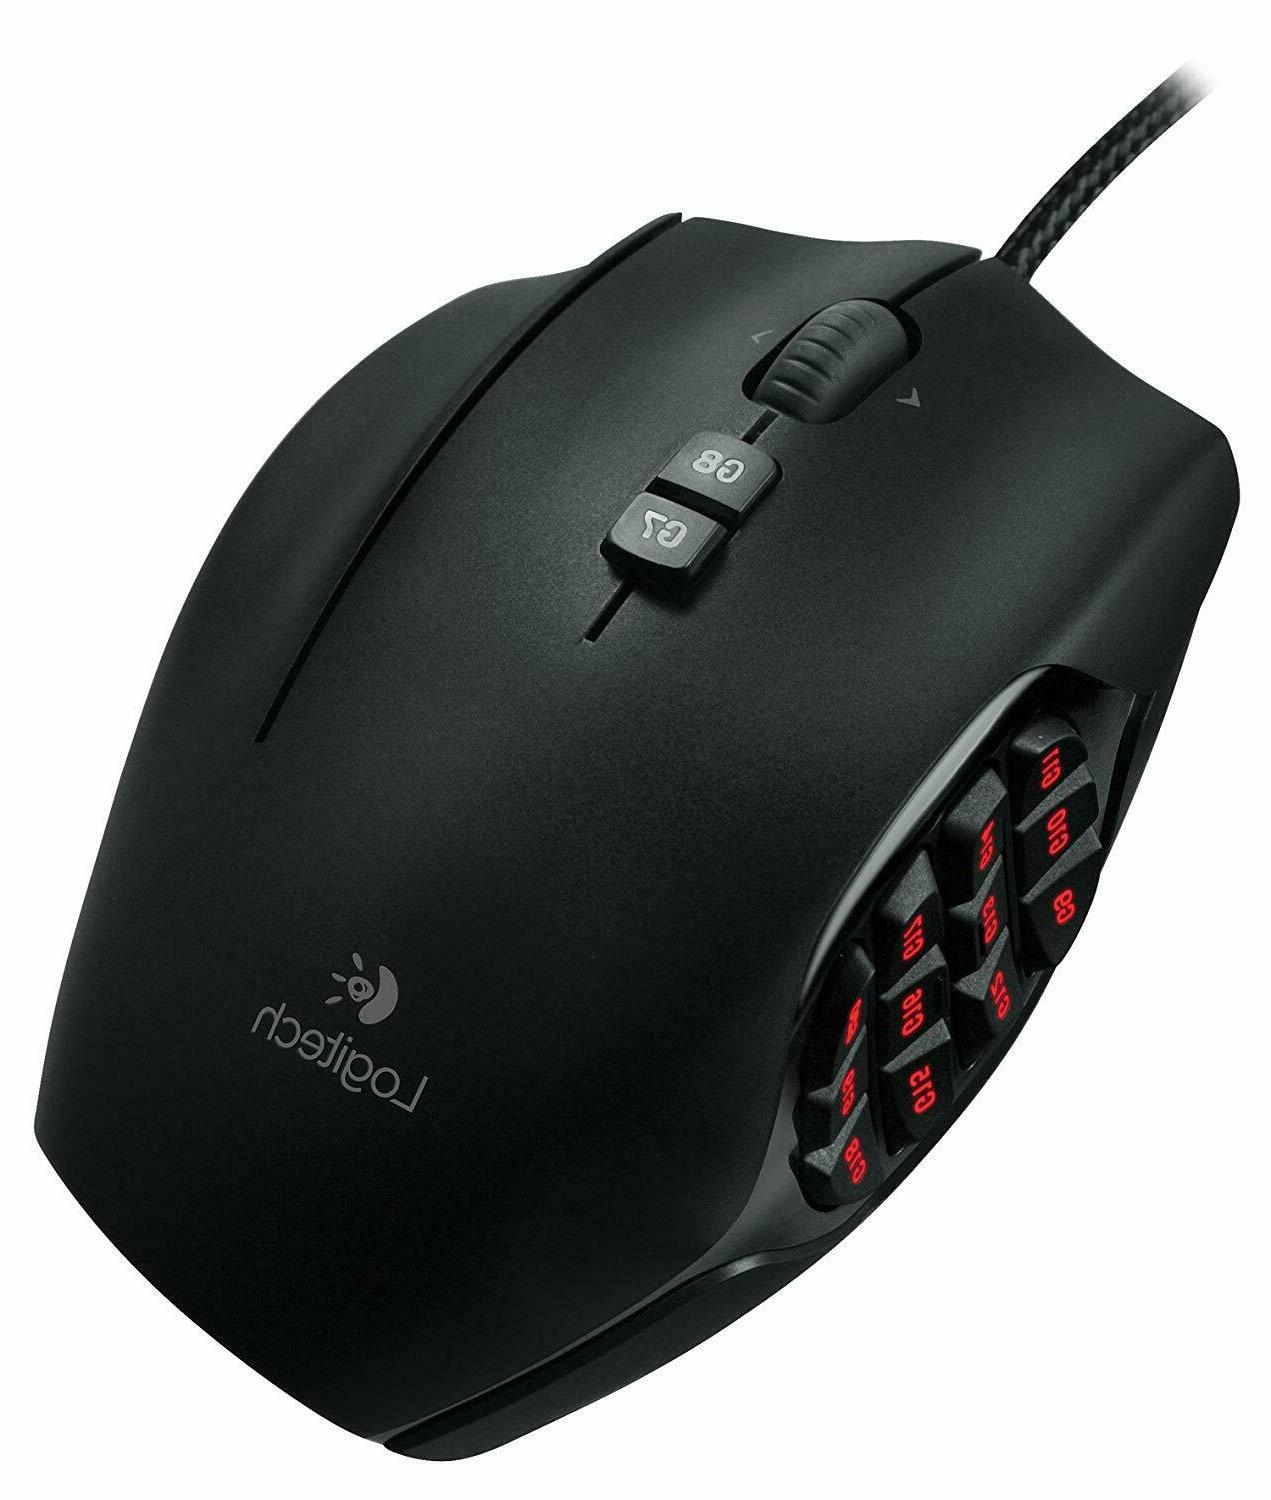 Logitech G600 MMO Gaming Mouse RGB Backlit 20